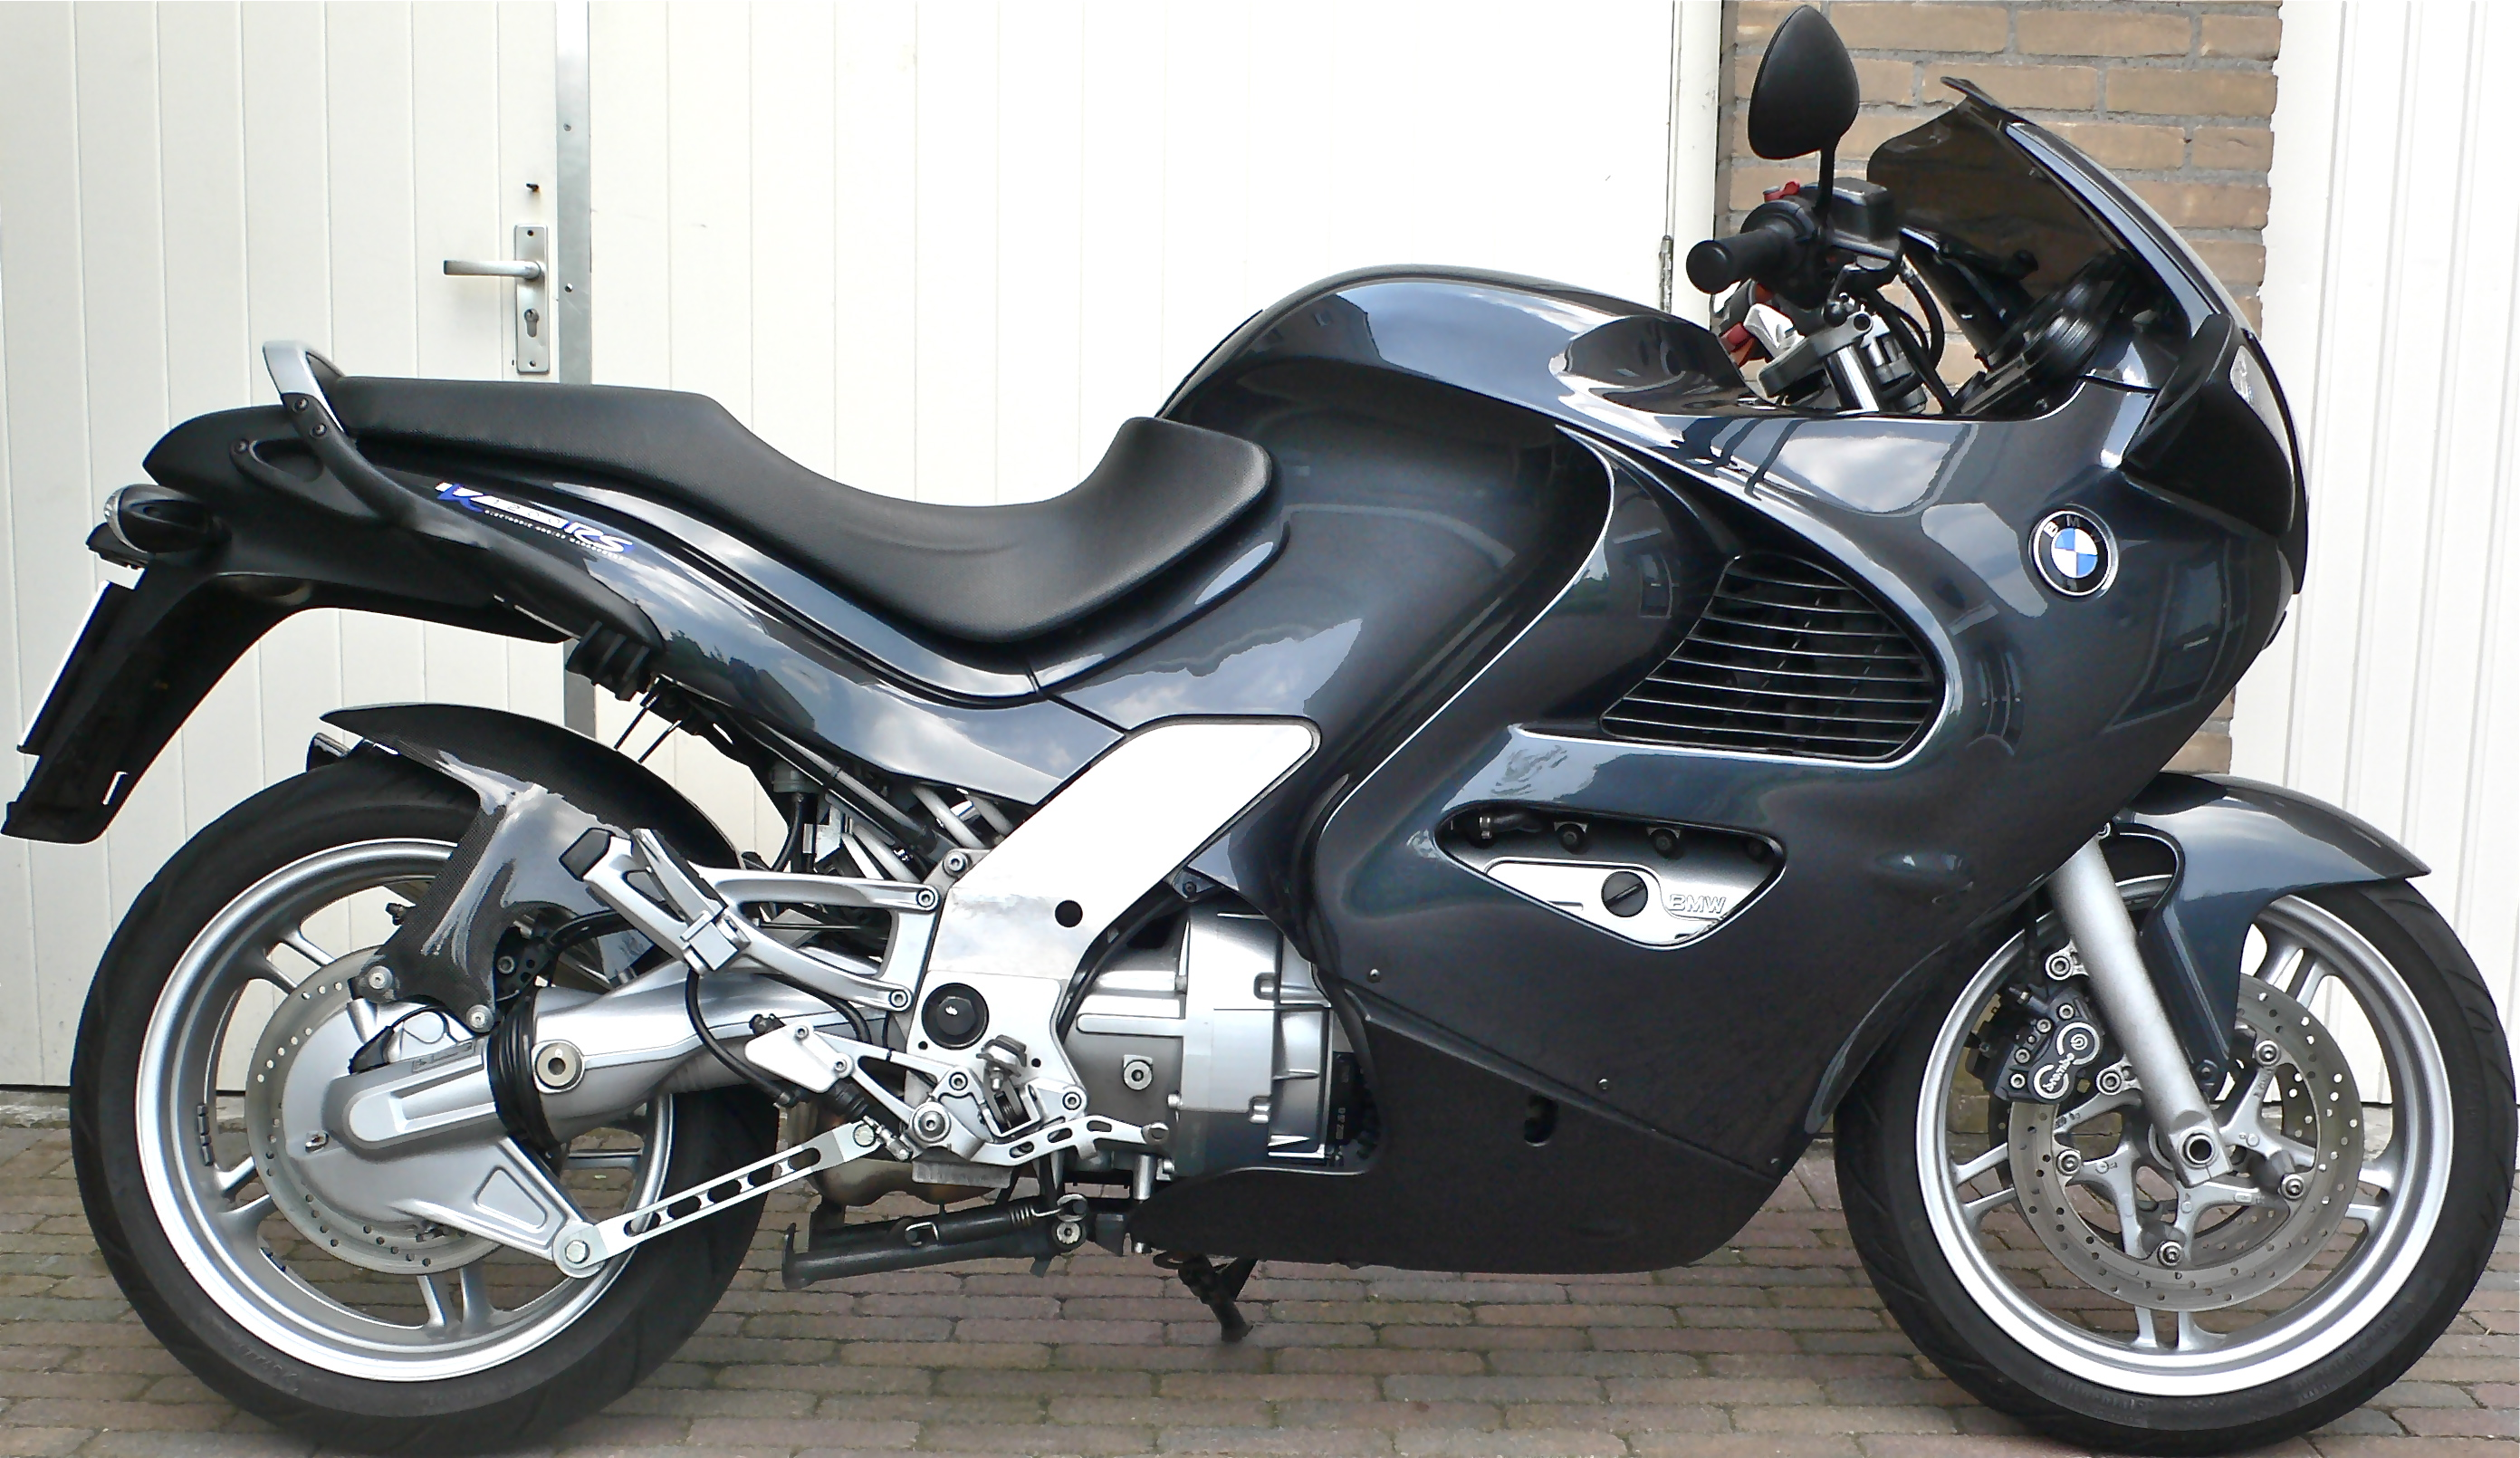 BMW K1200RS 1997 images #165699